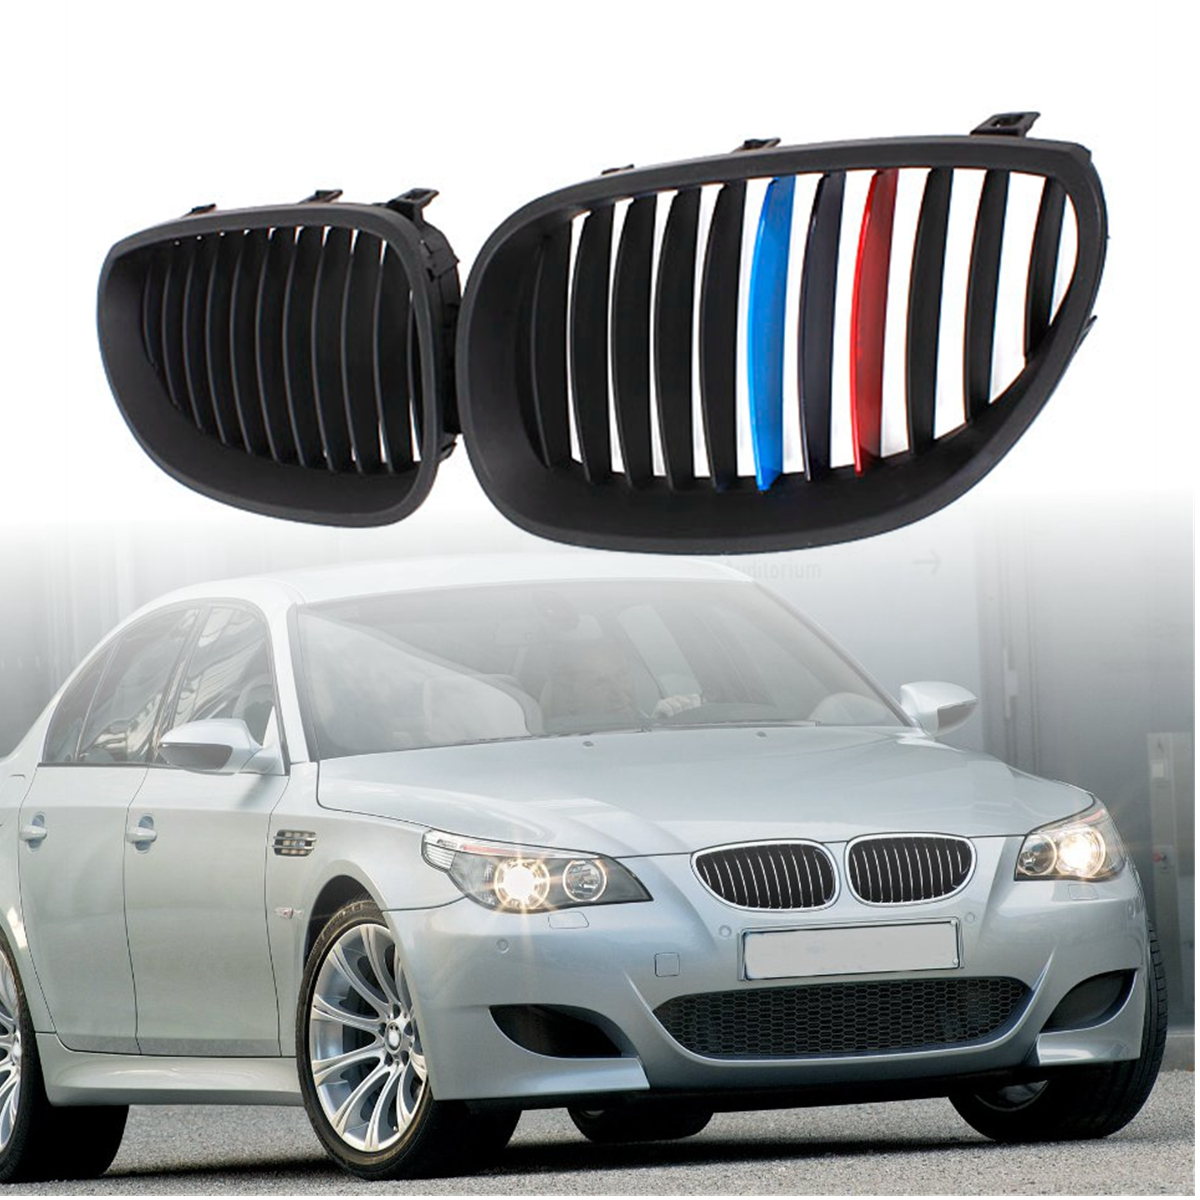 Pair ABS Car Matte/Gloss Black M Color Front Kidney Grille Grills For BMW E60/E61 5 Series Sedan 03-09 pair gloss matt black germany color m color double slat line front kidney racing grilles for bmw e60 e61 525i 528i